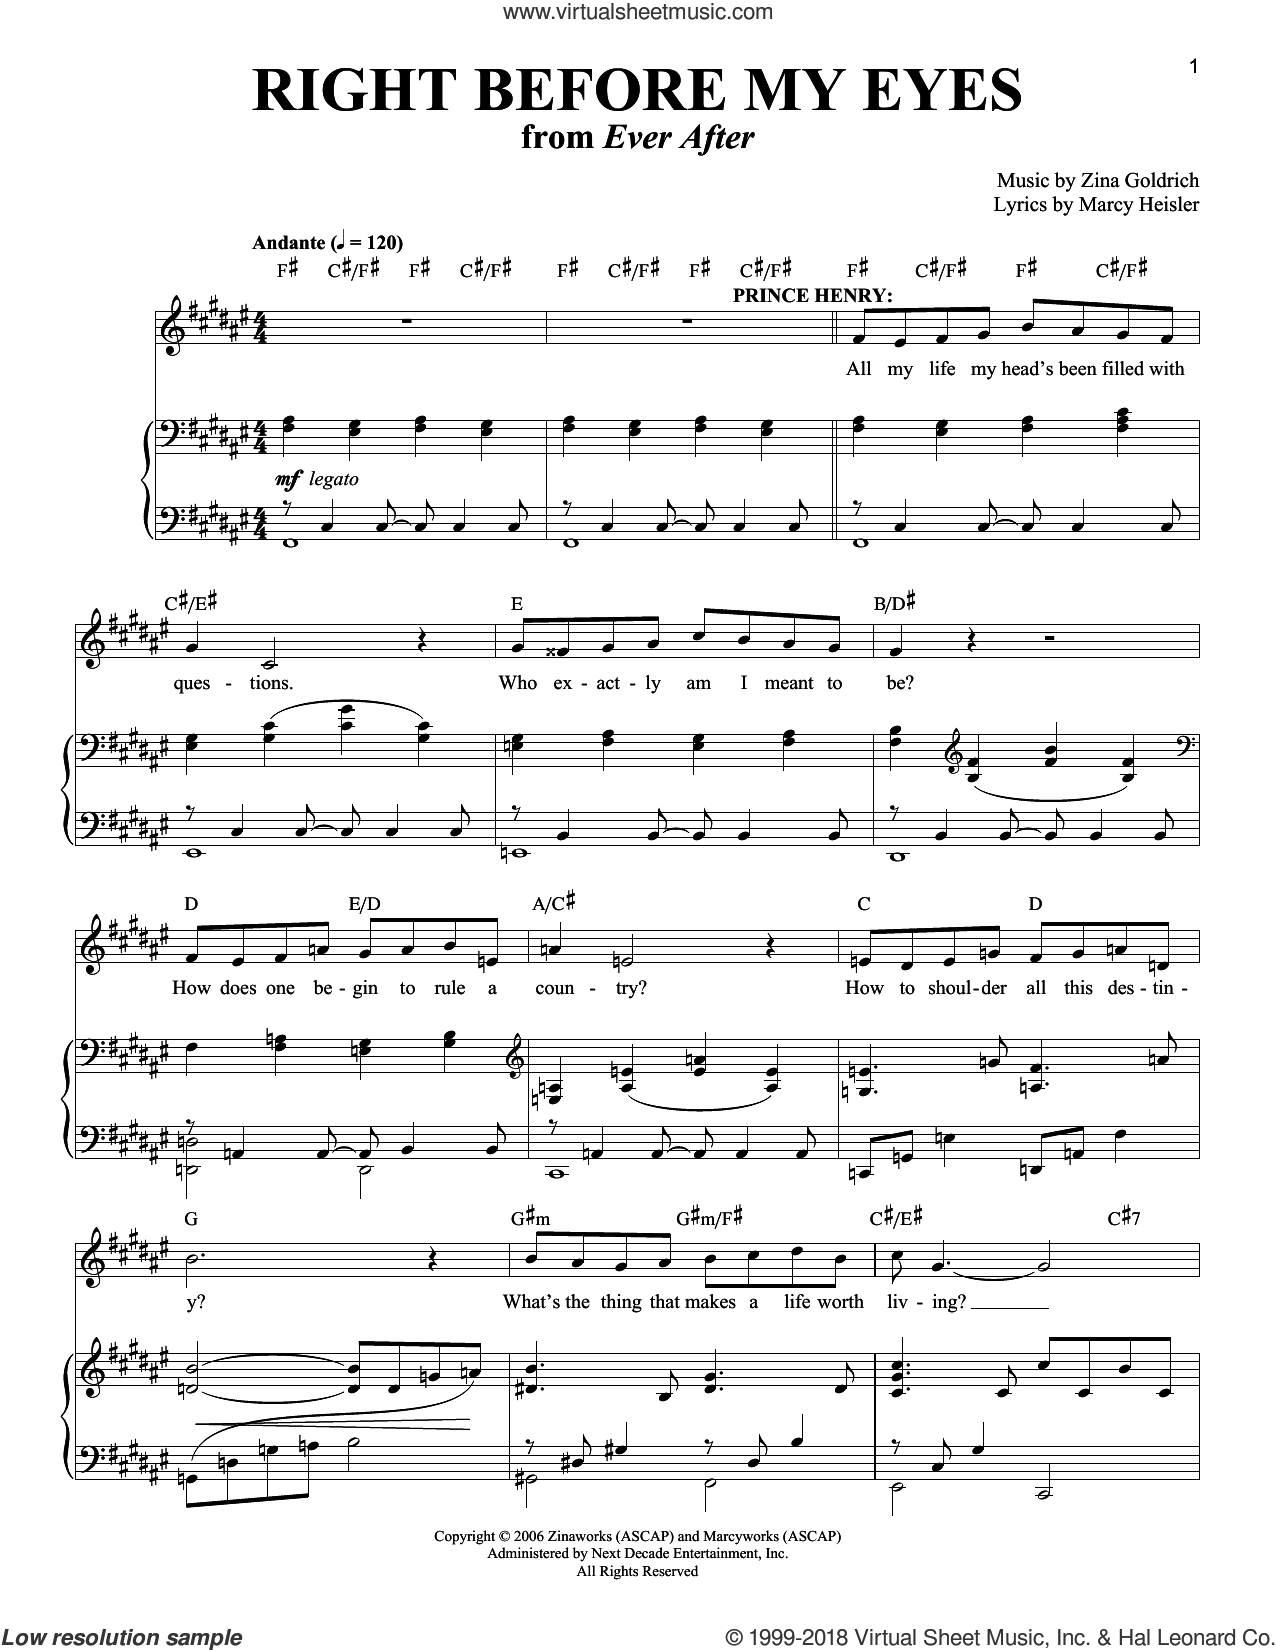 Right Before My Eyes sheet music for voice and piano by Goldrich & Heisler, Marcy Heisler and Zina Goldrich, intermediate skill level